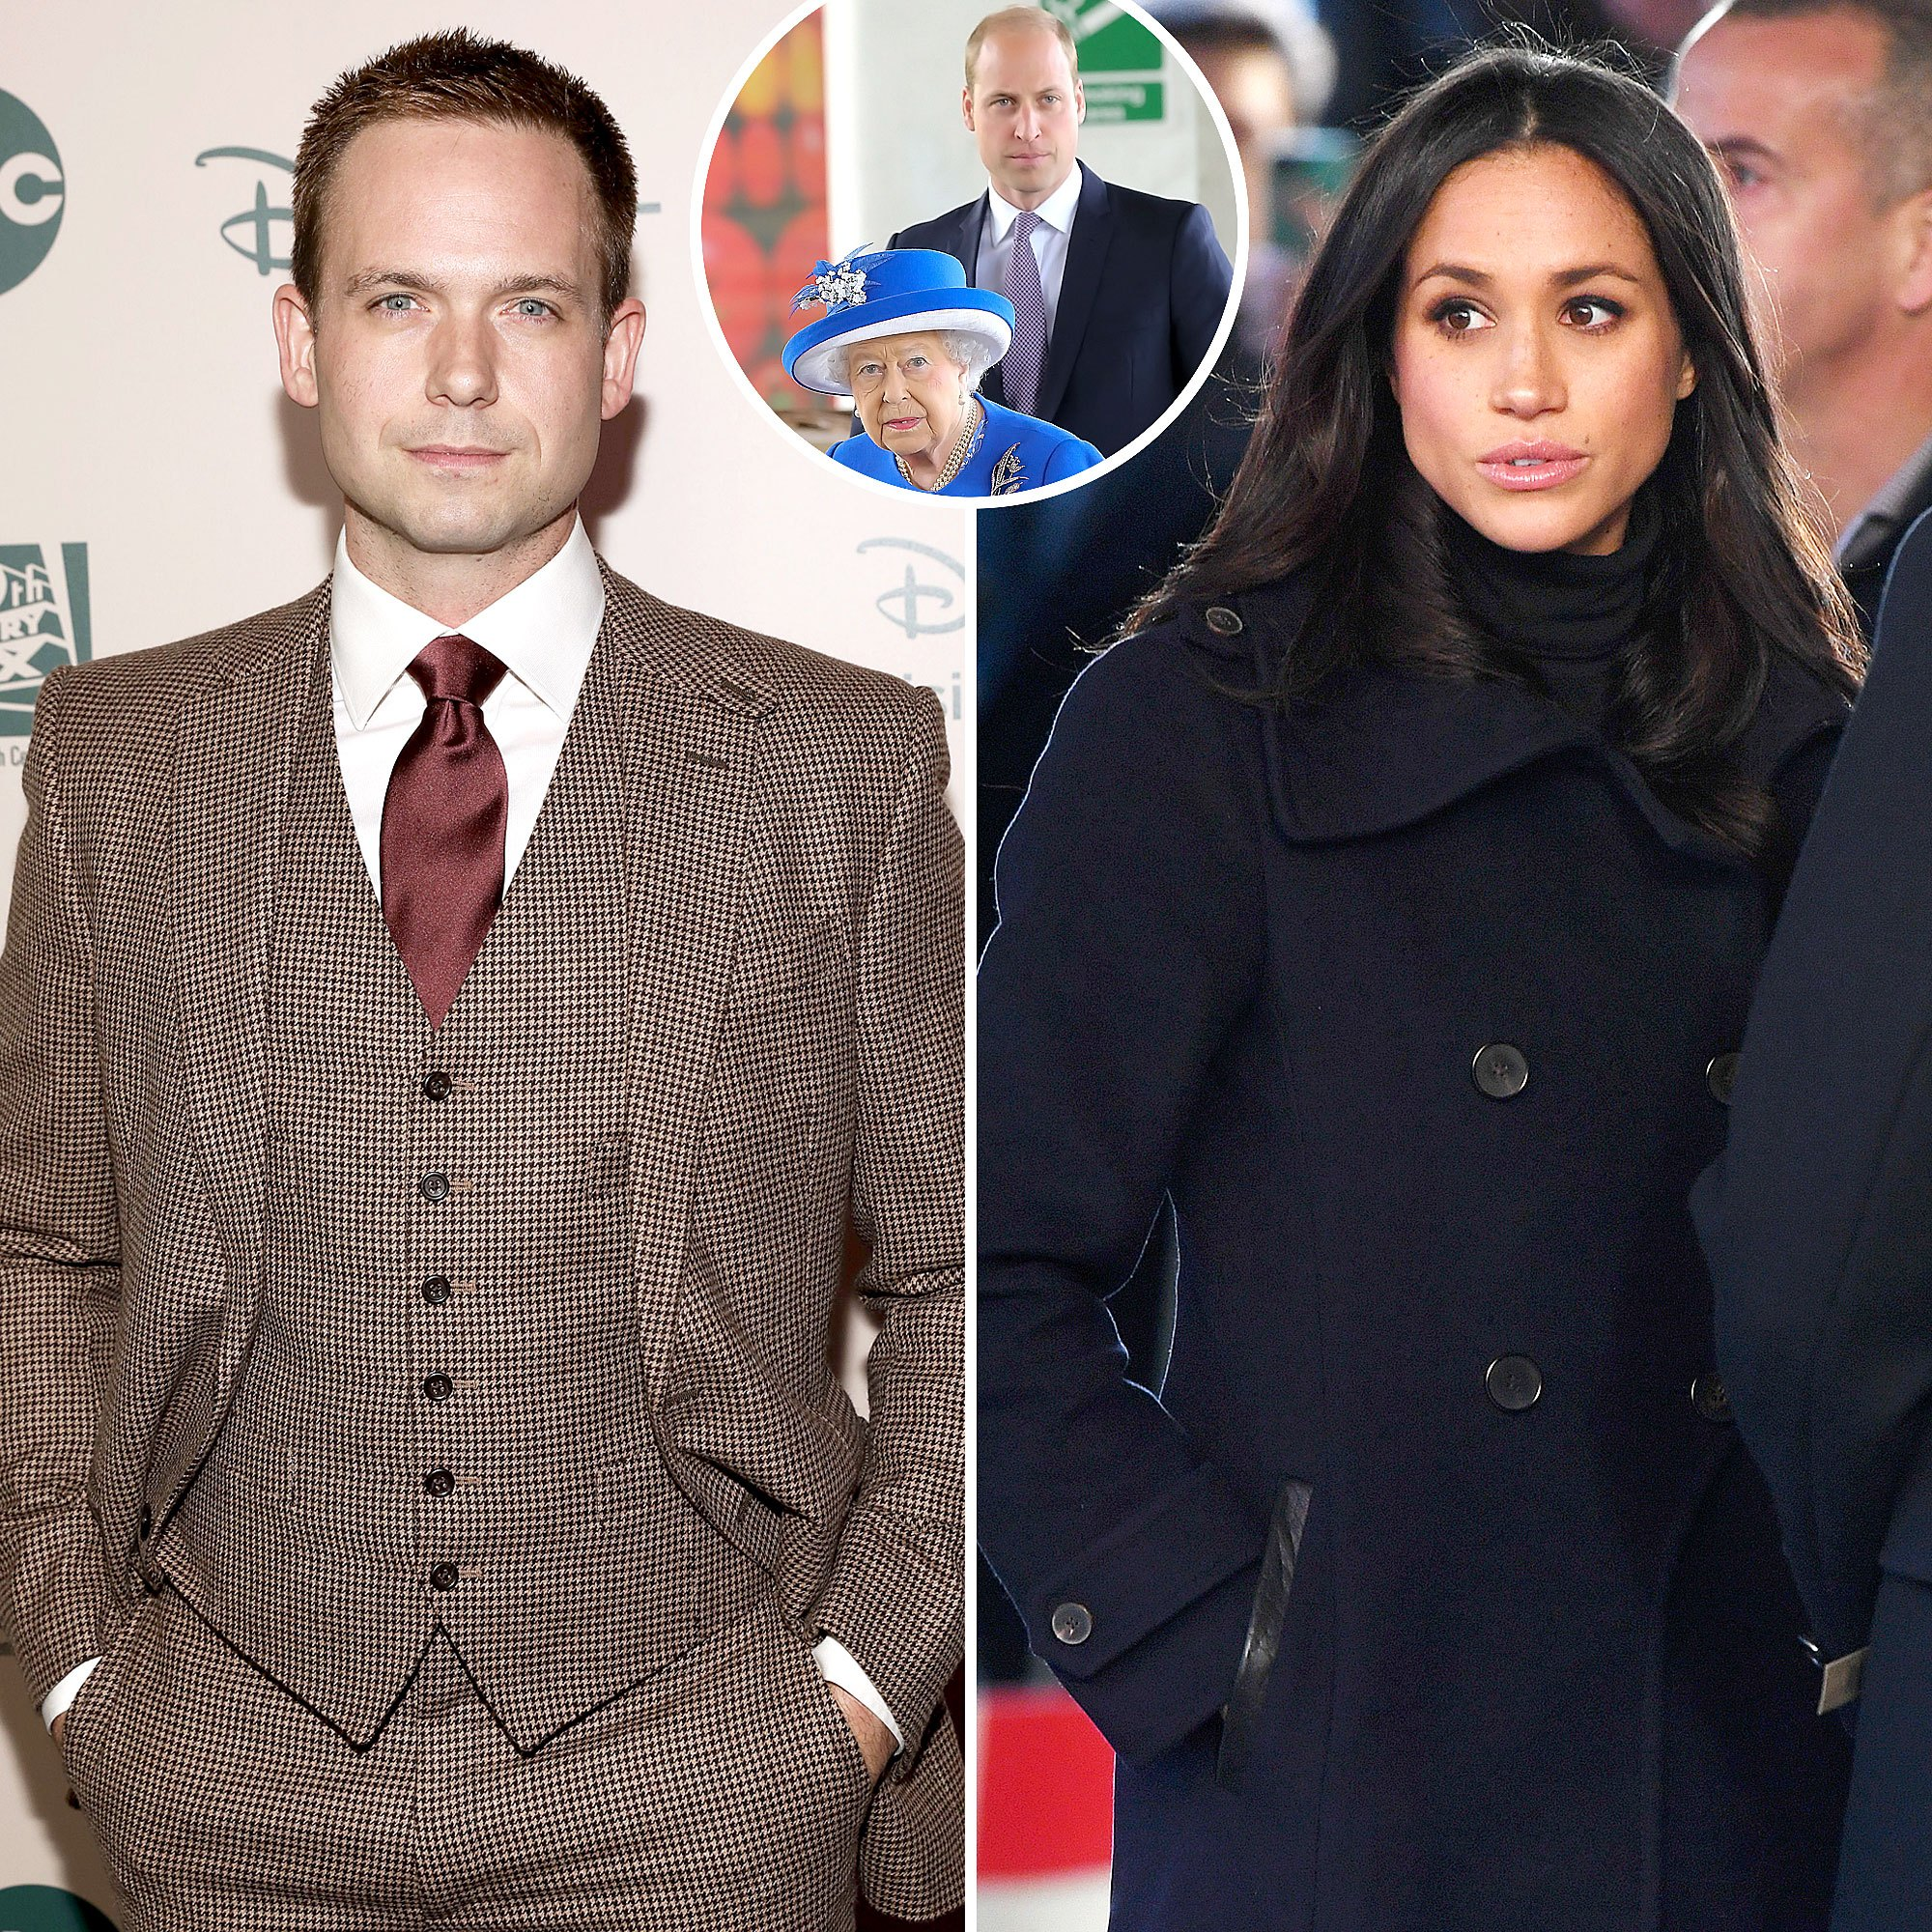 patrick-j-adams-slams-the-toxic-and-archaic-royal-family-amid-claims-meghan-markle-bullied-staffers-at-the-palace